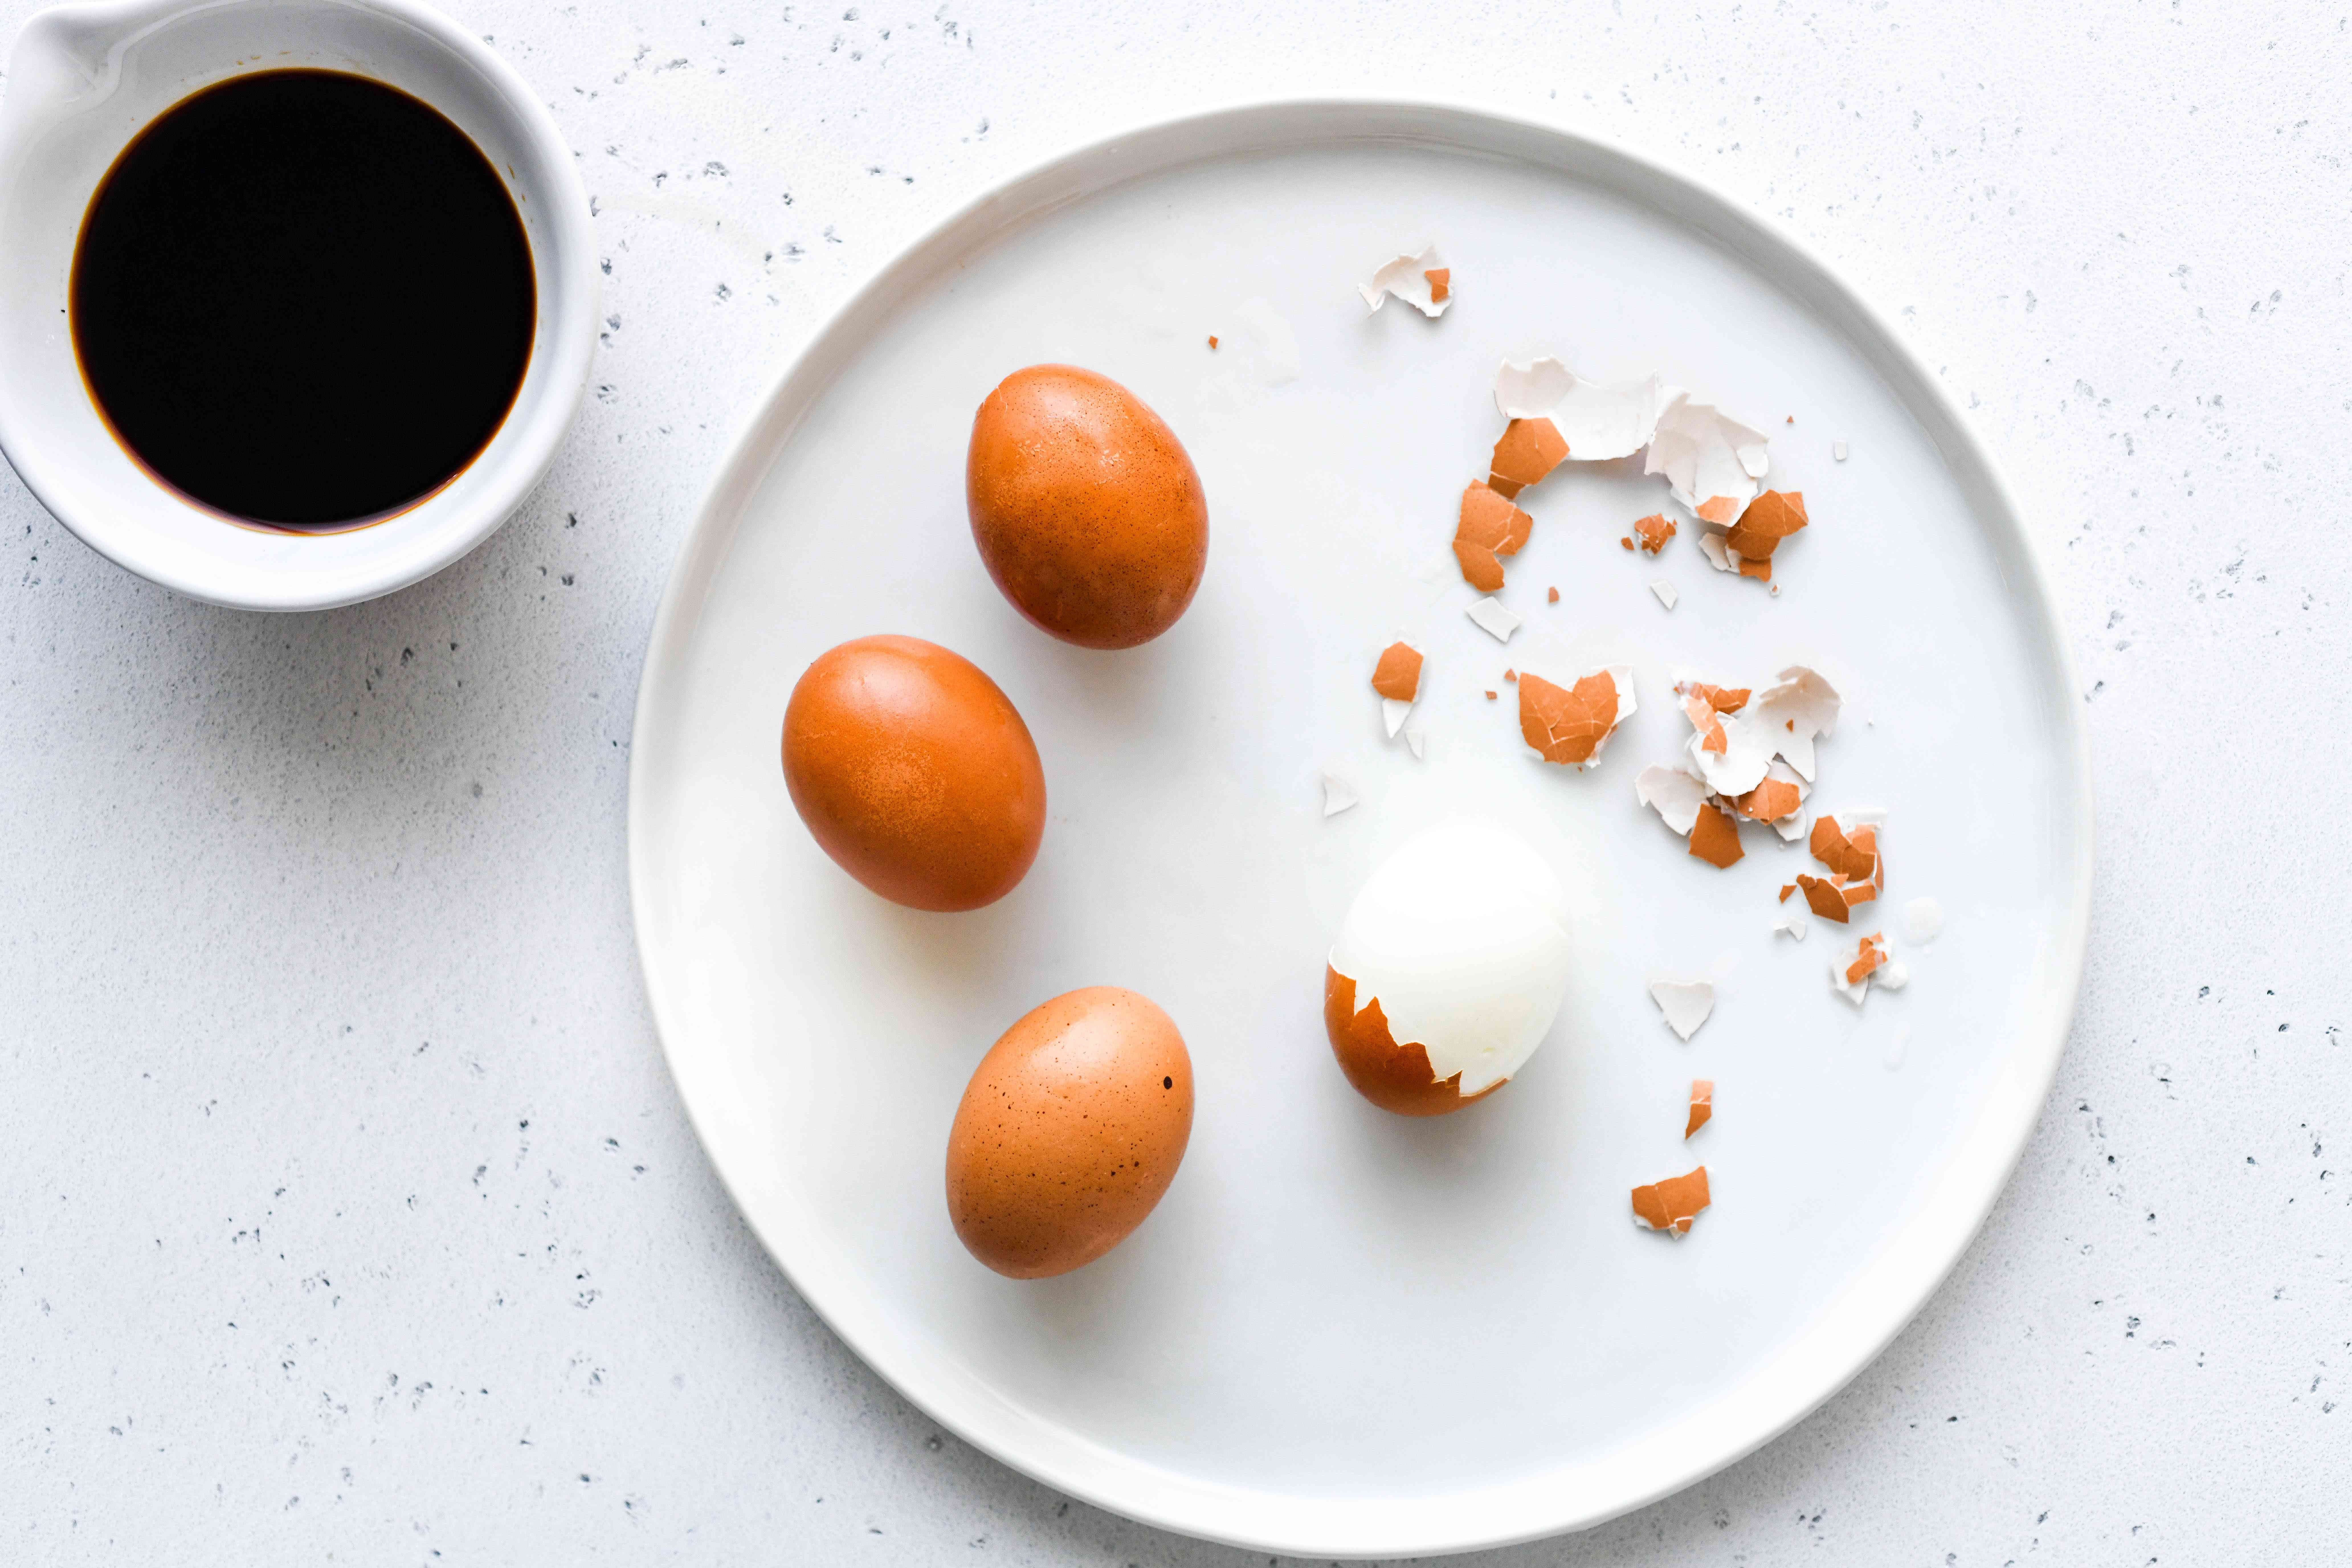 remove shells from boiled eggs